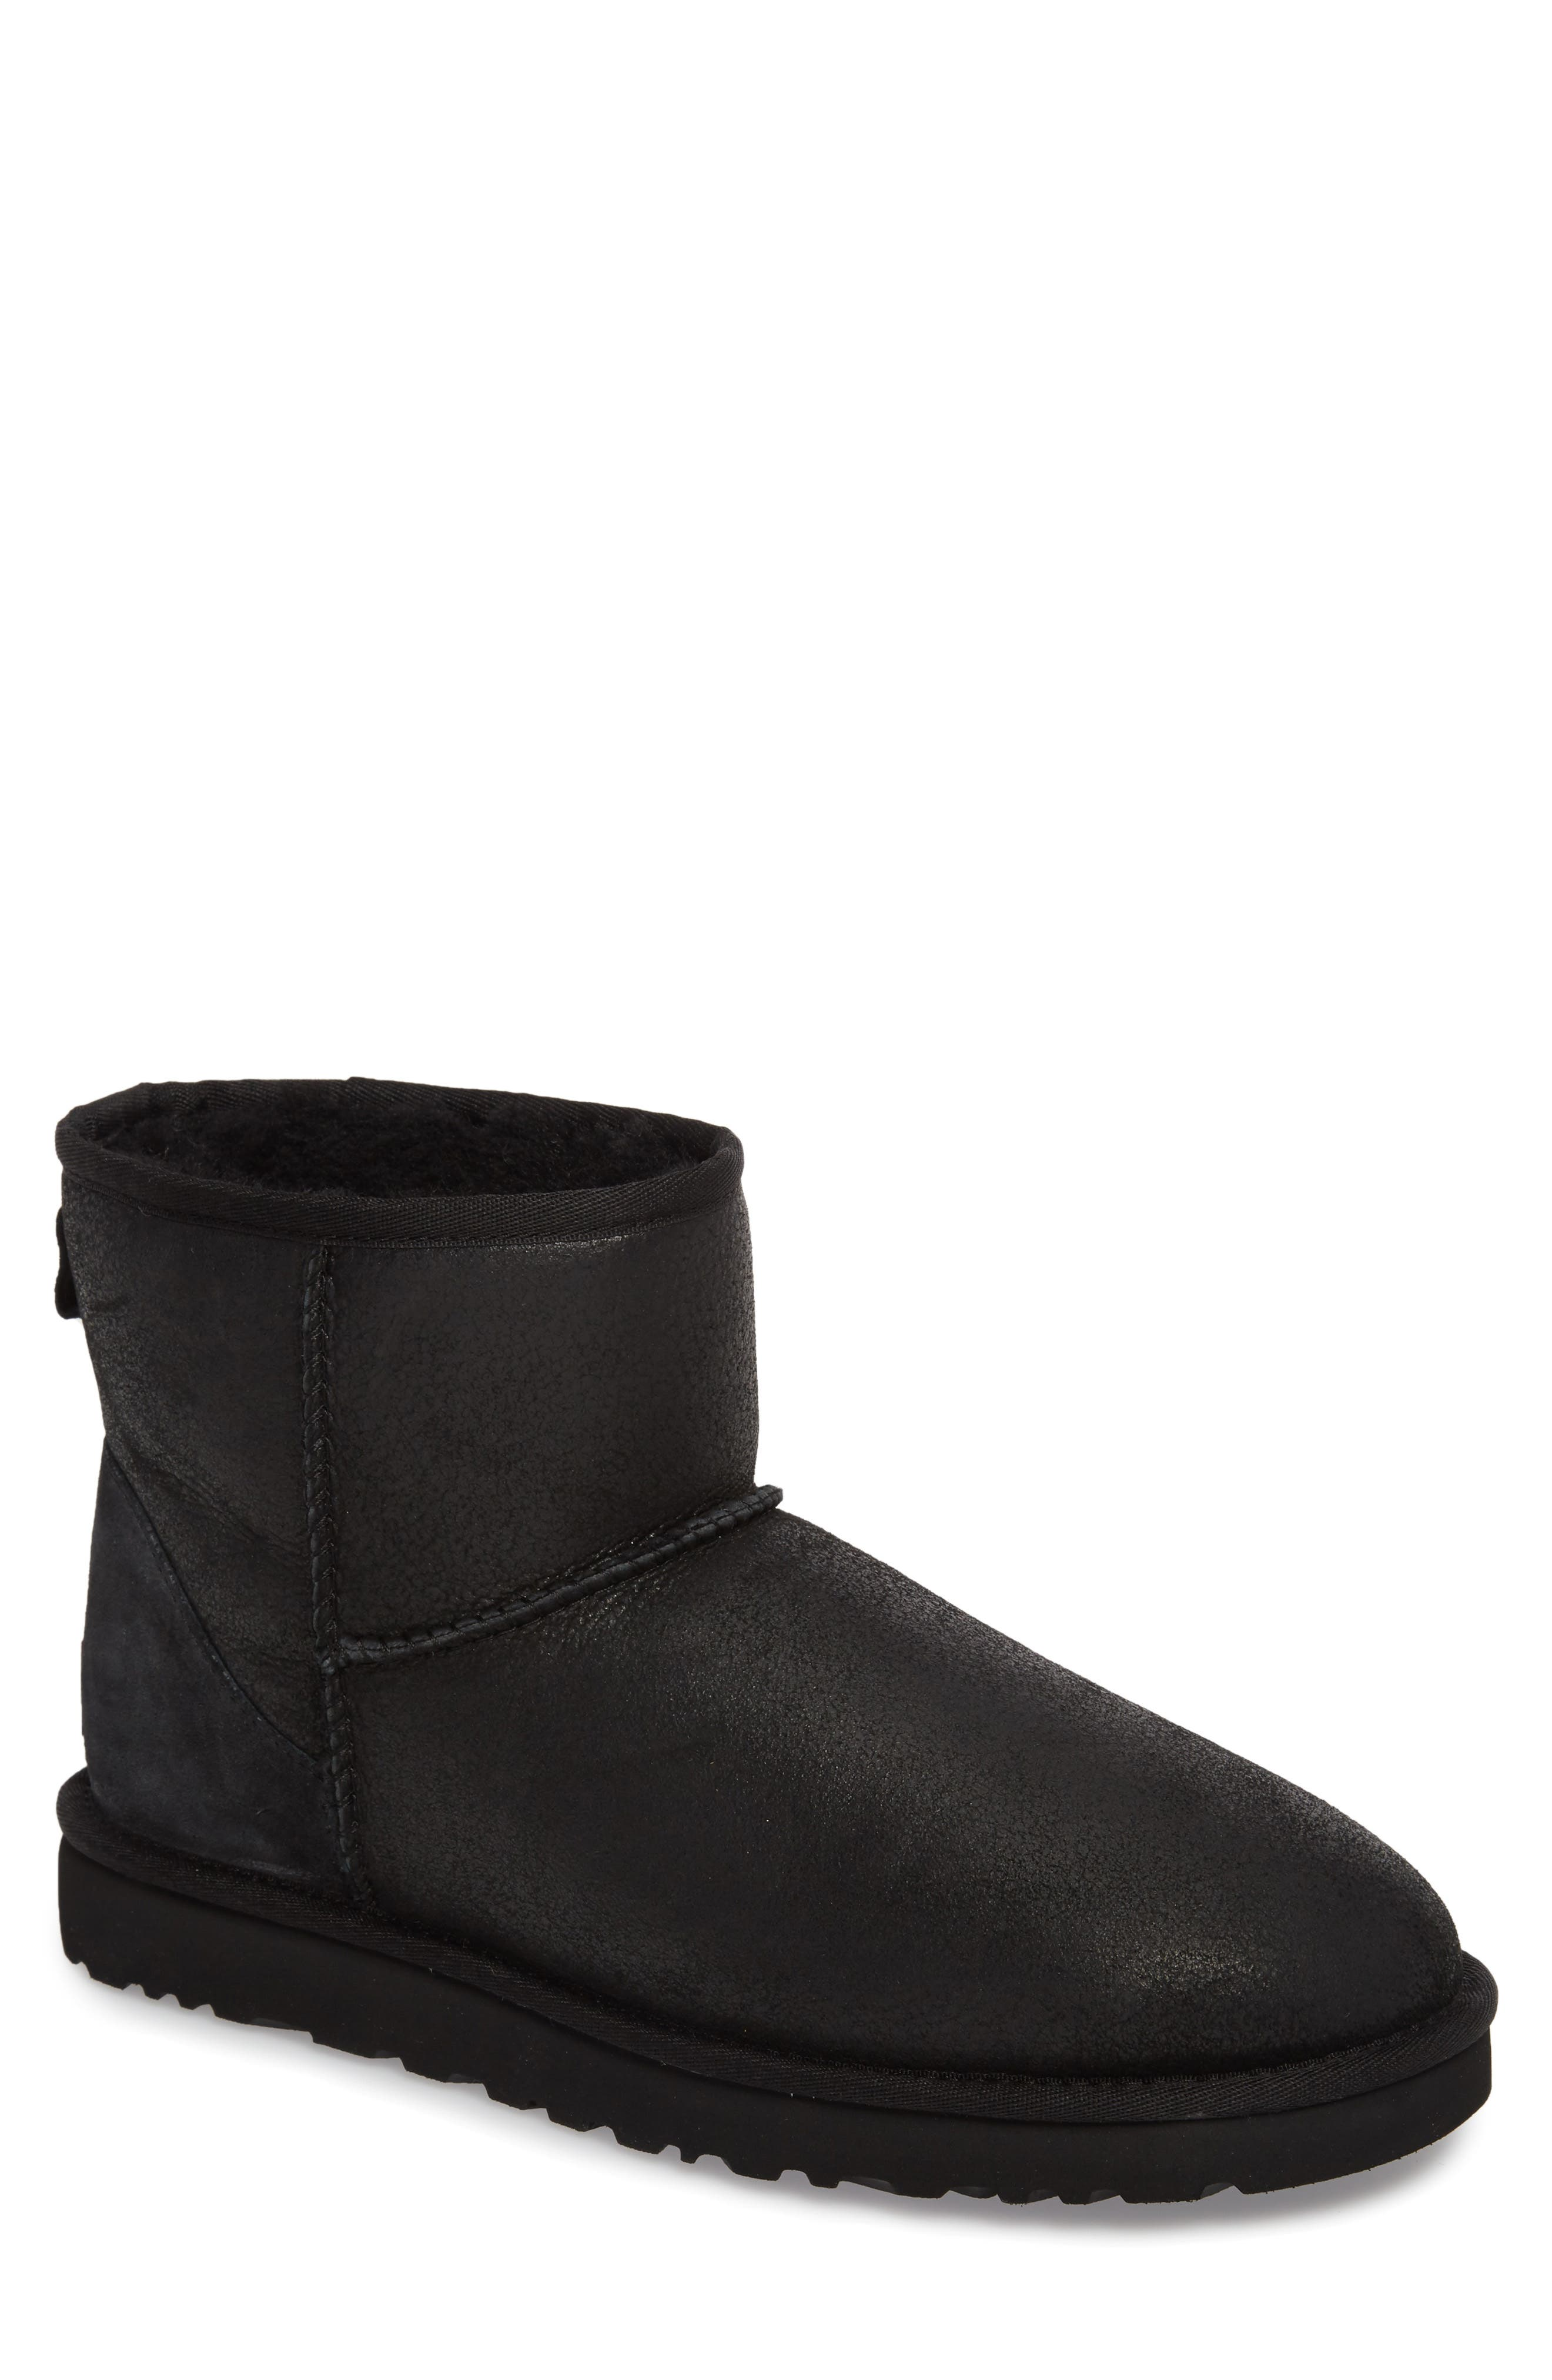 Ugg Classic Mini Bomber Boot With Genuine Shearling Or Uggpure(TM) Lining, Black